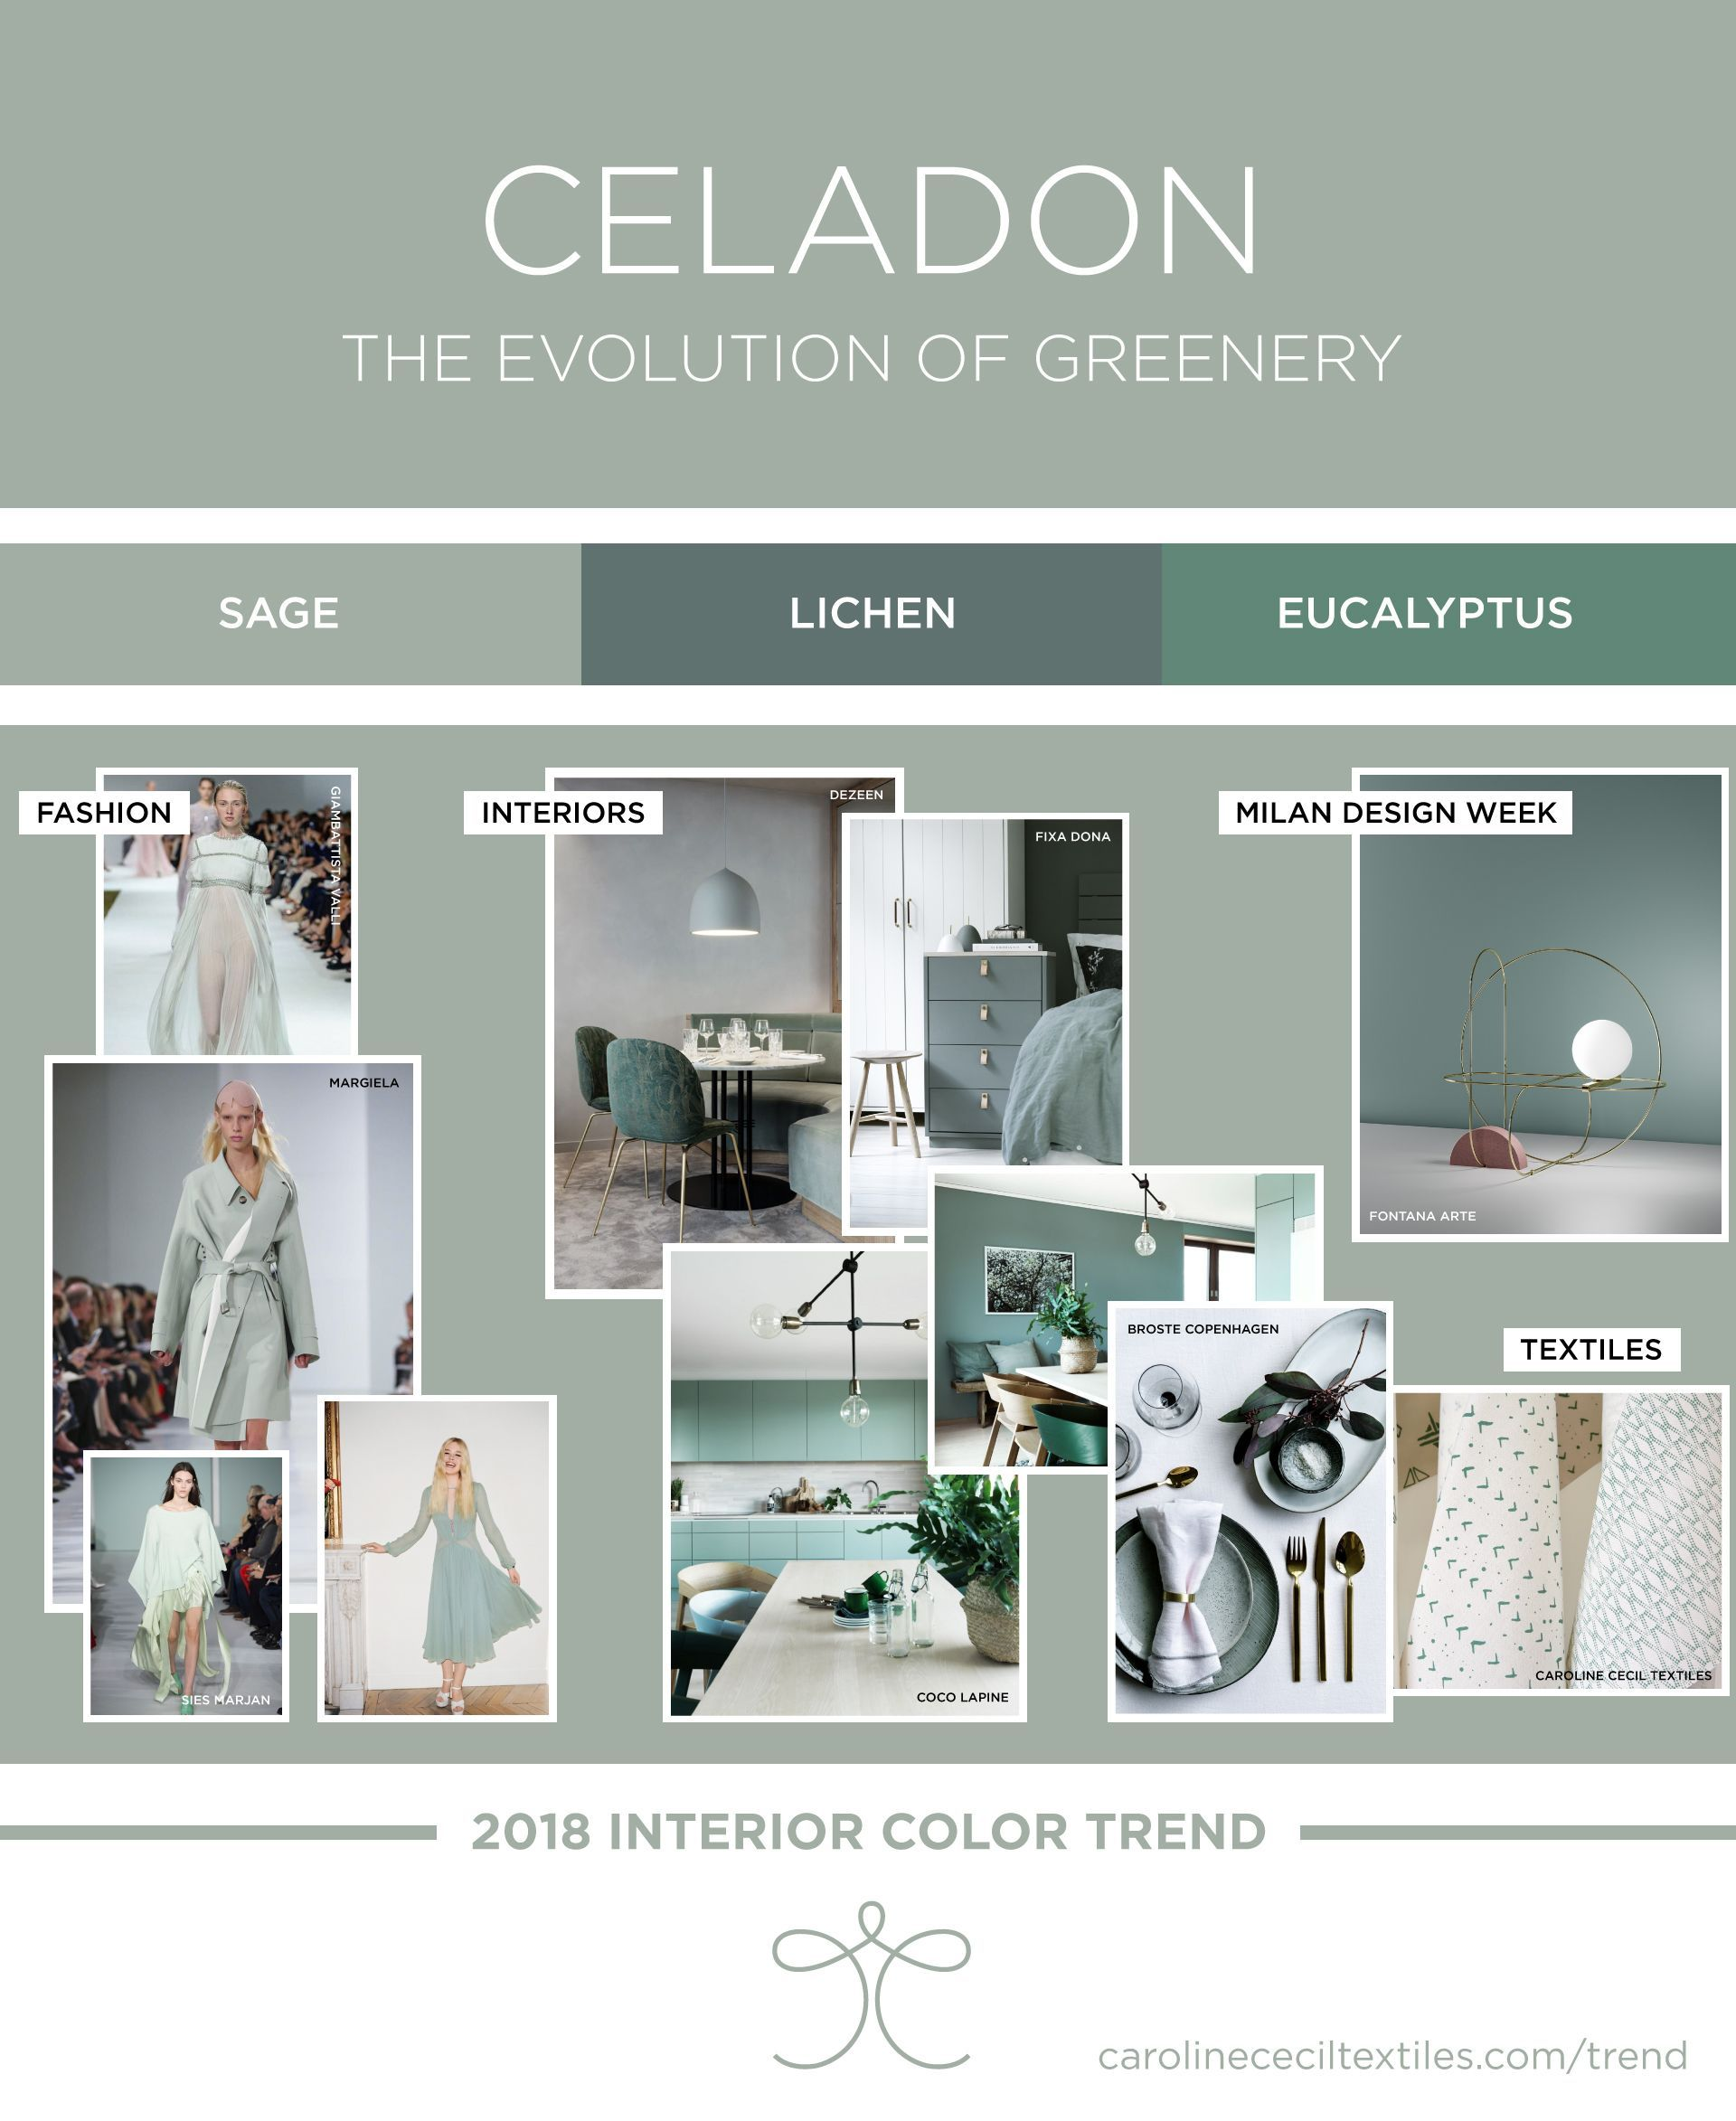 Interior color trends 2018 | SS18 | AW18 | greenery | green | sage